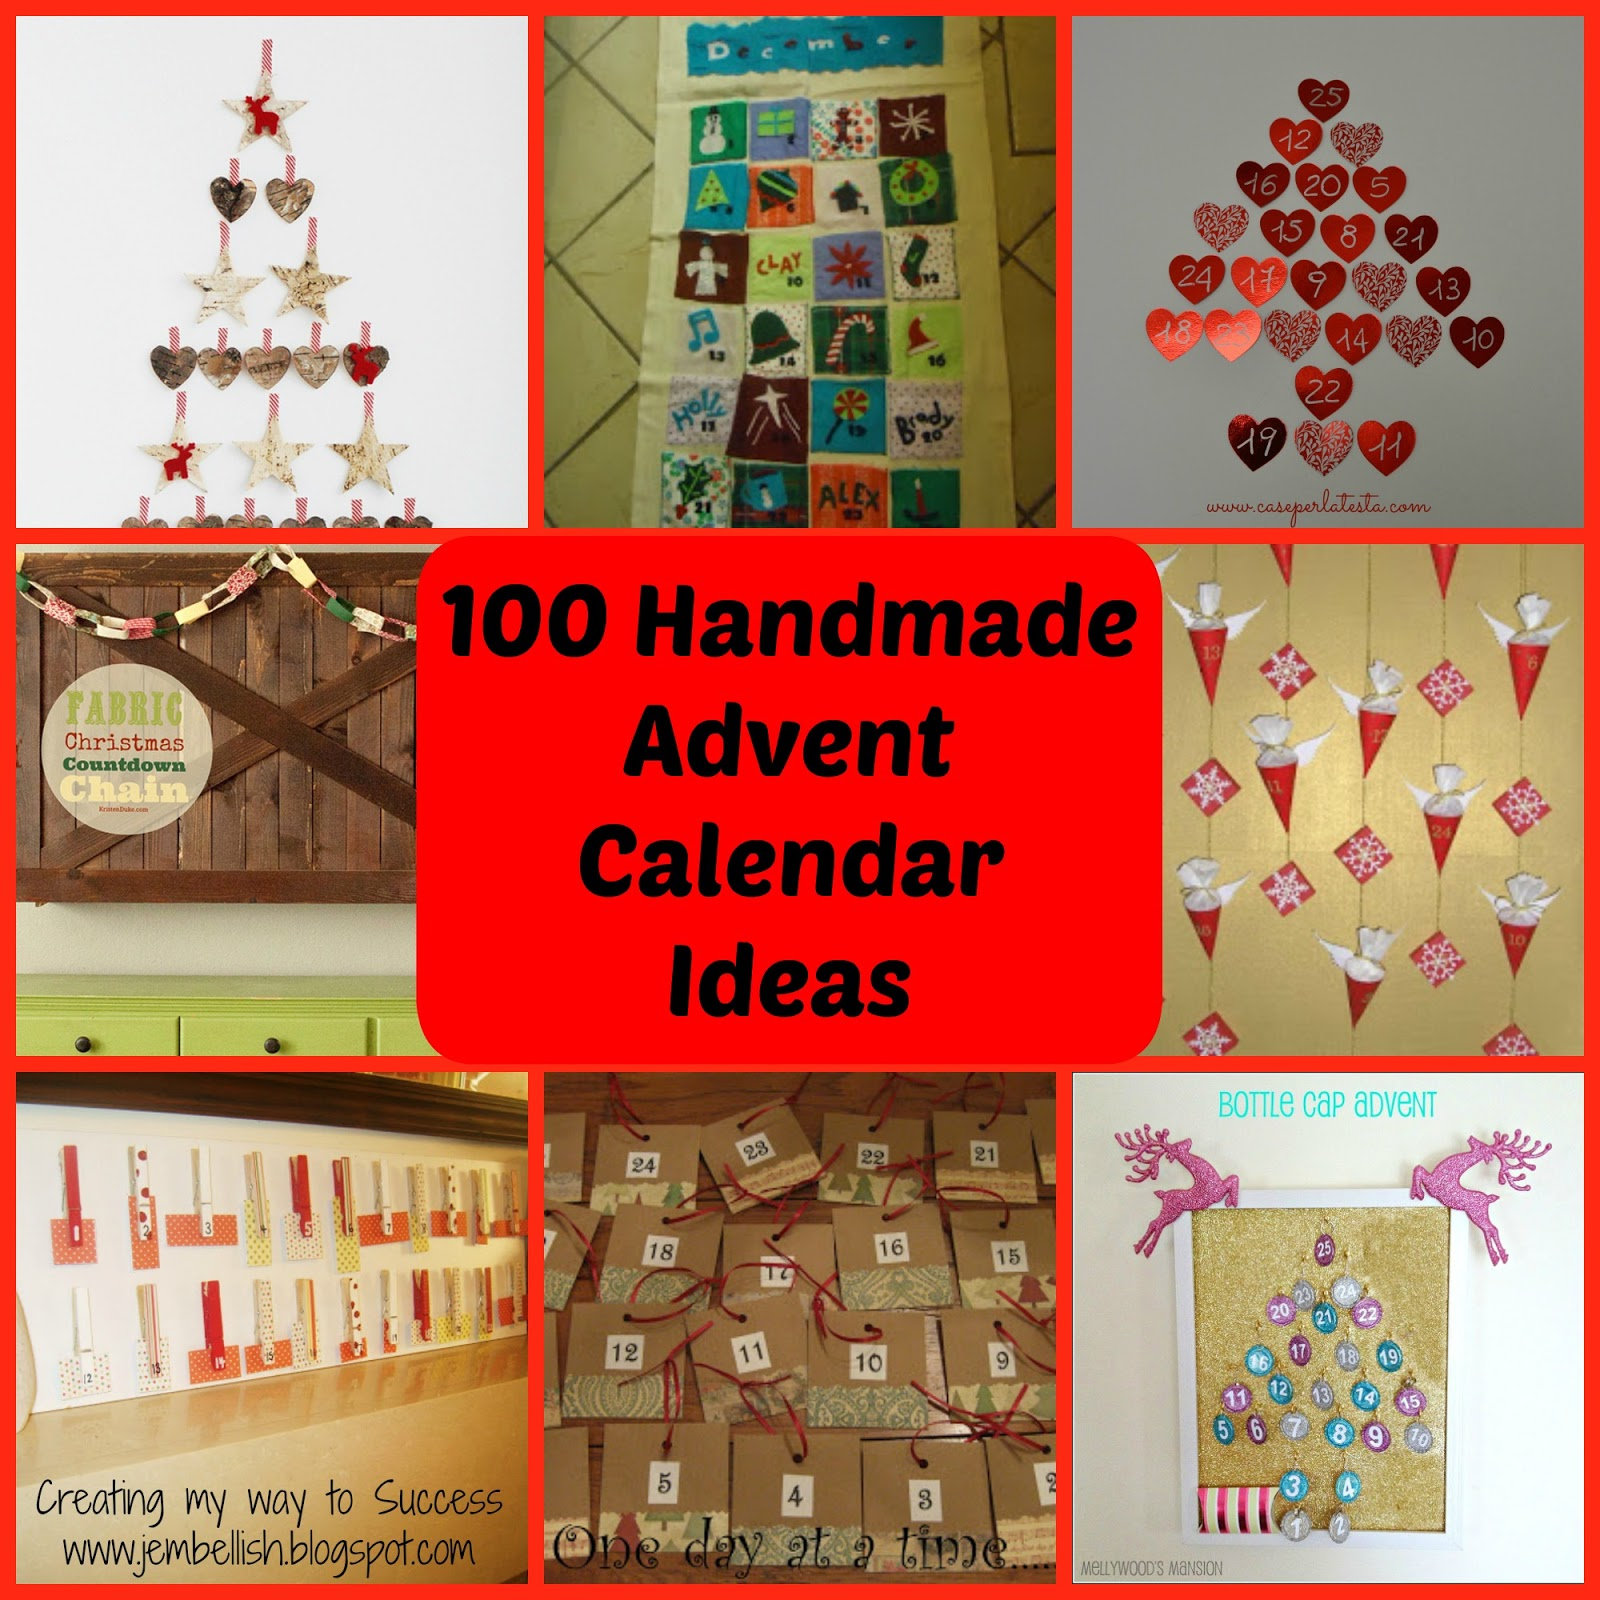 Calendar Square Ideas : Creating my way to success ideas for handmade advent